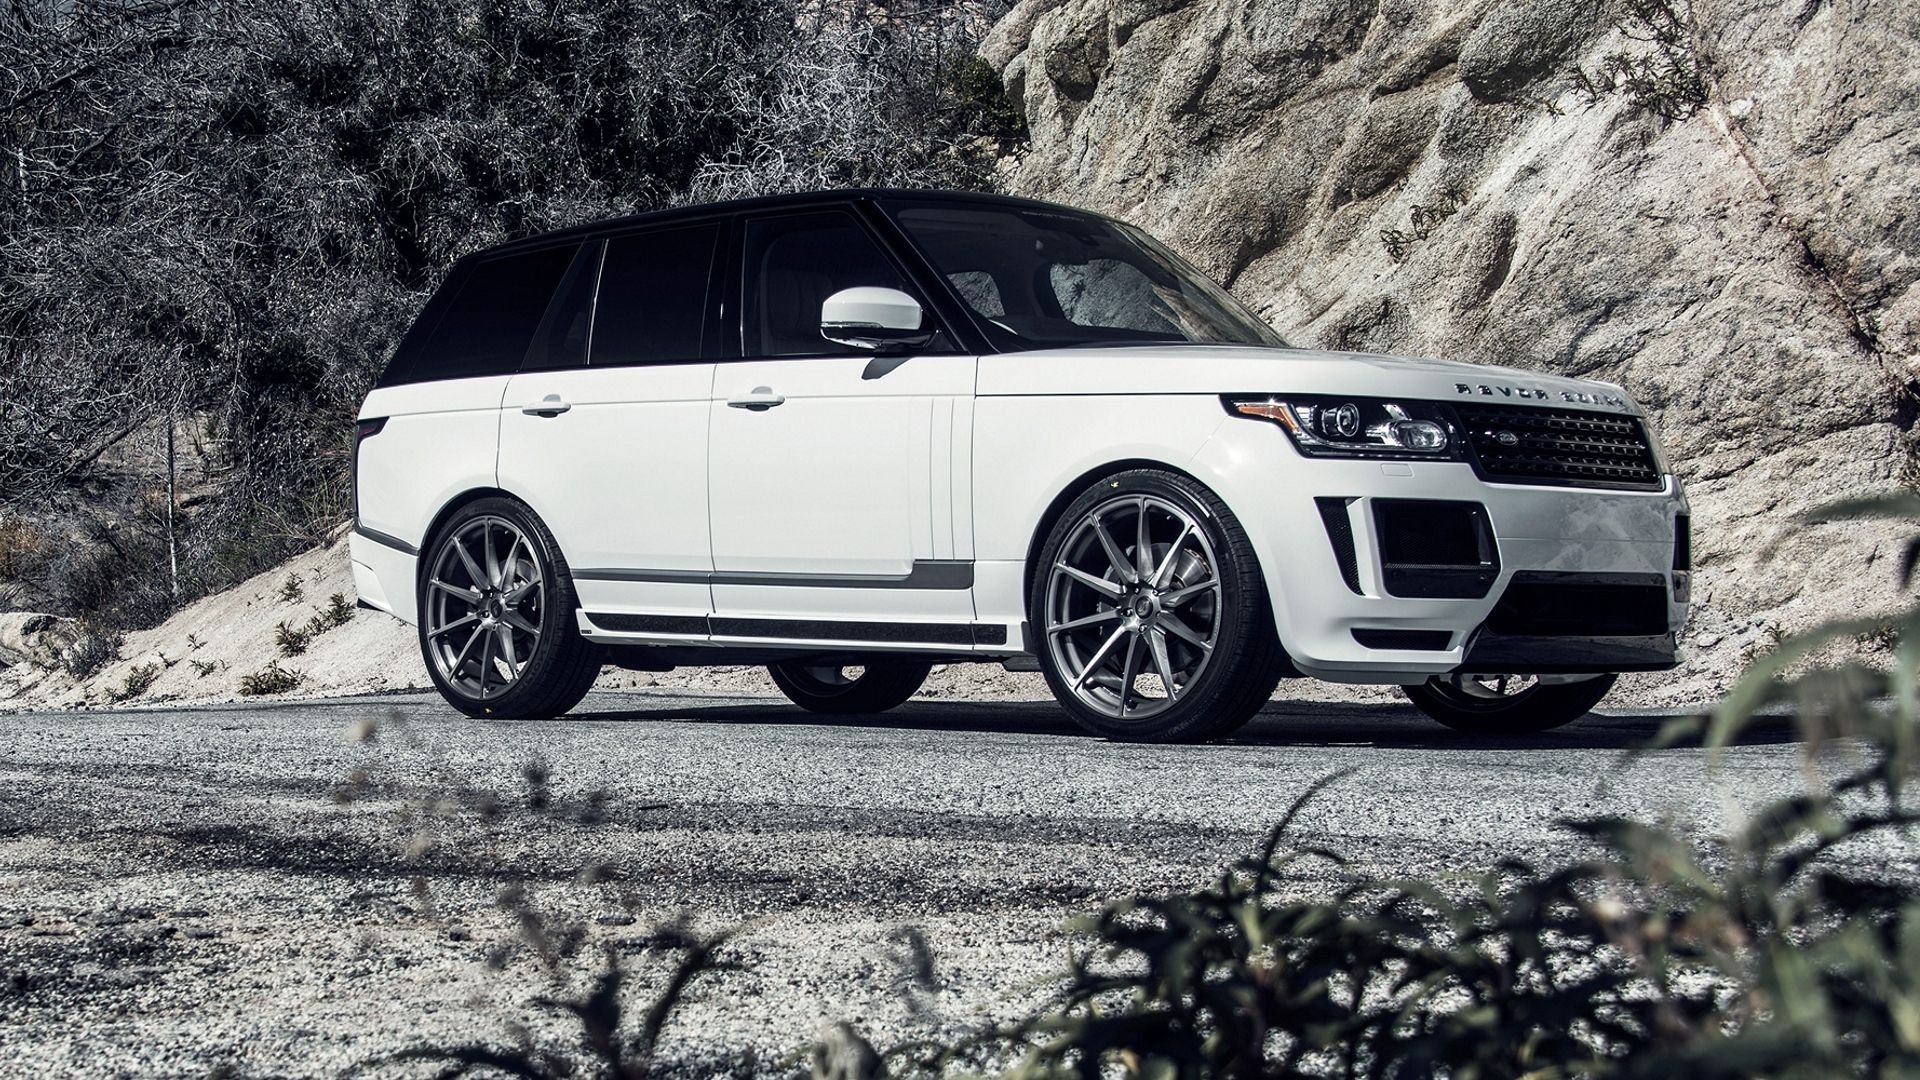 Range Rover wallpaper for computer